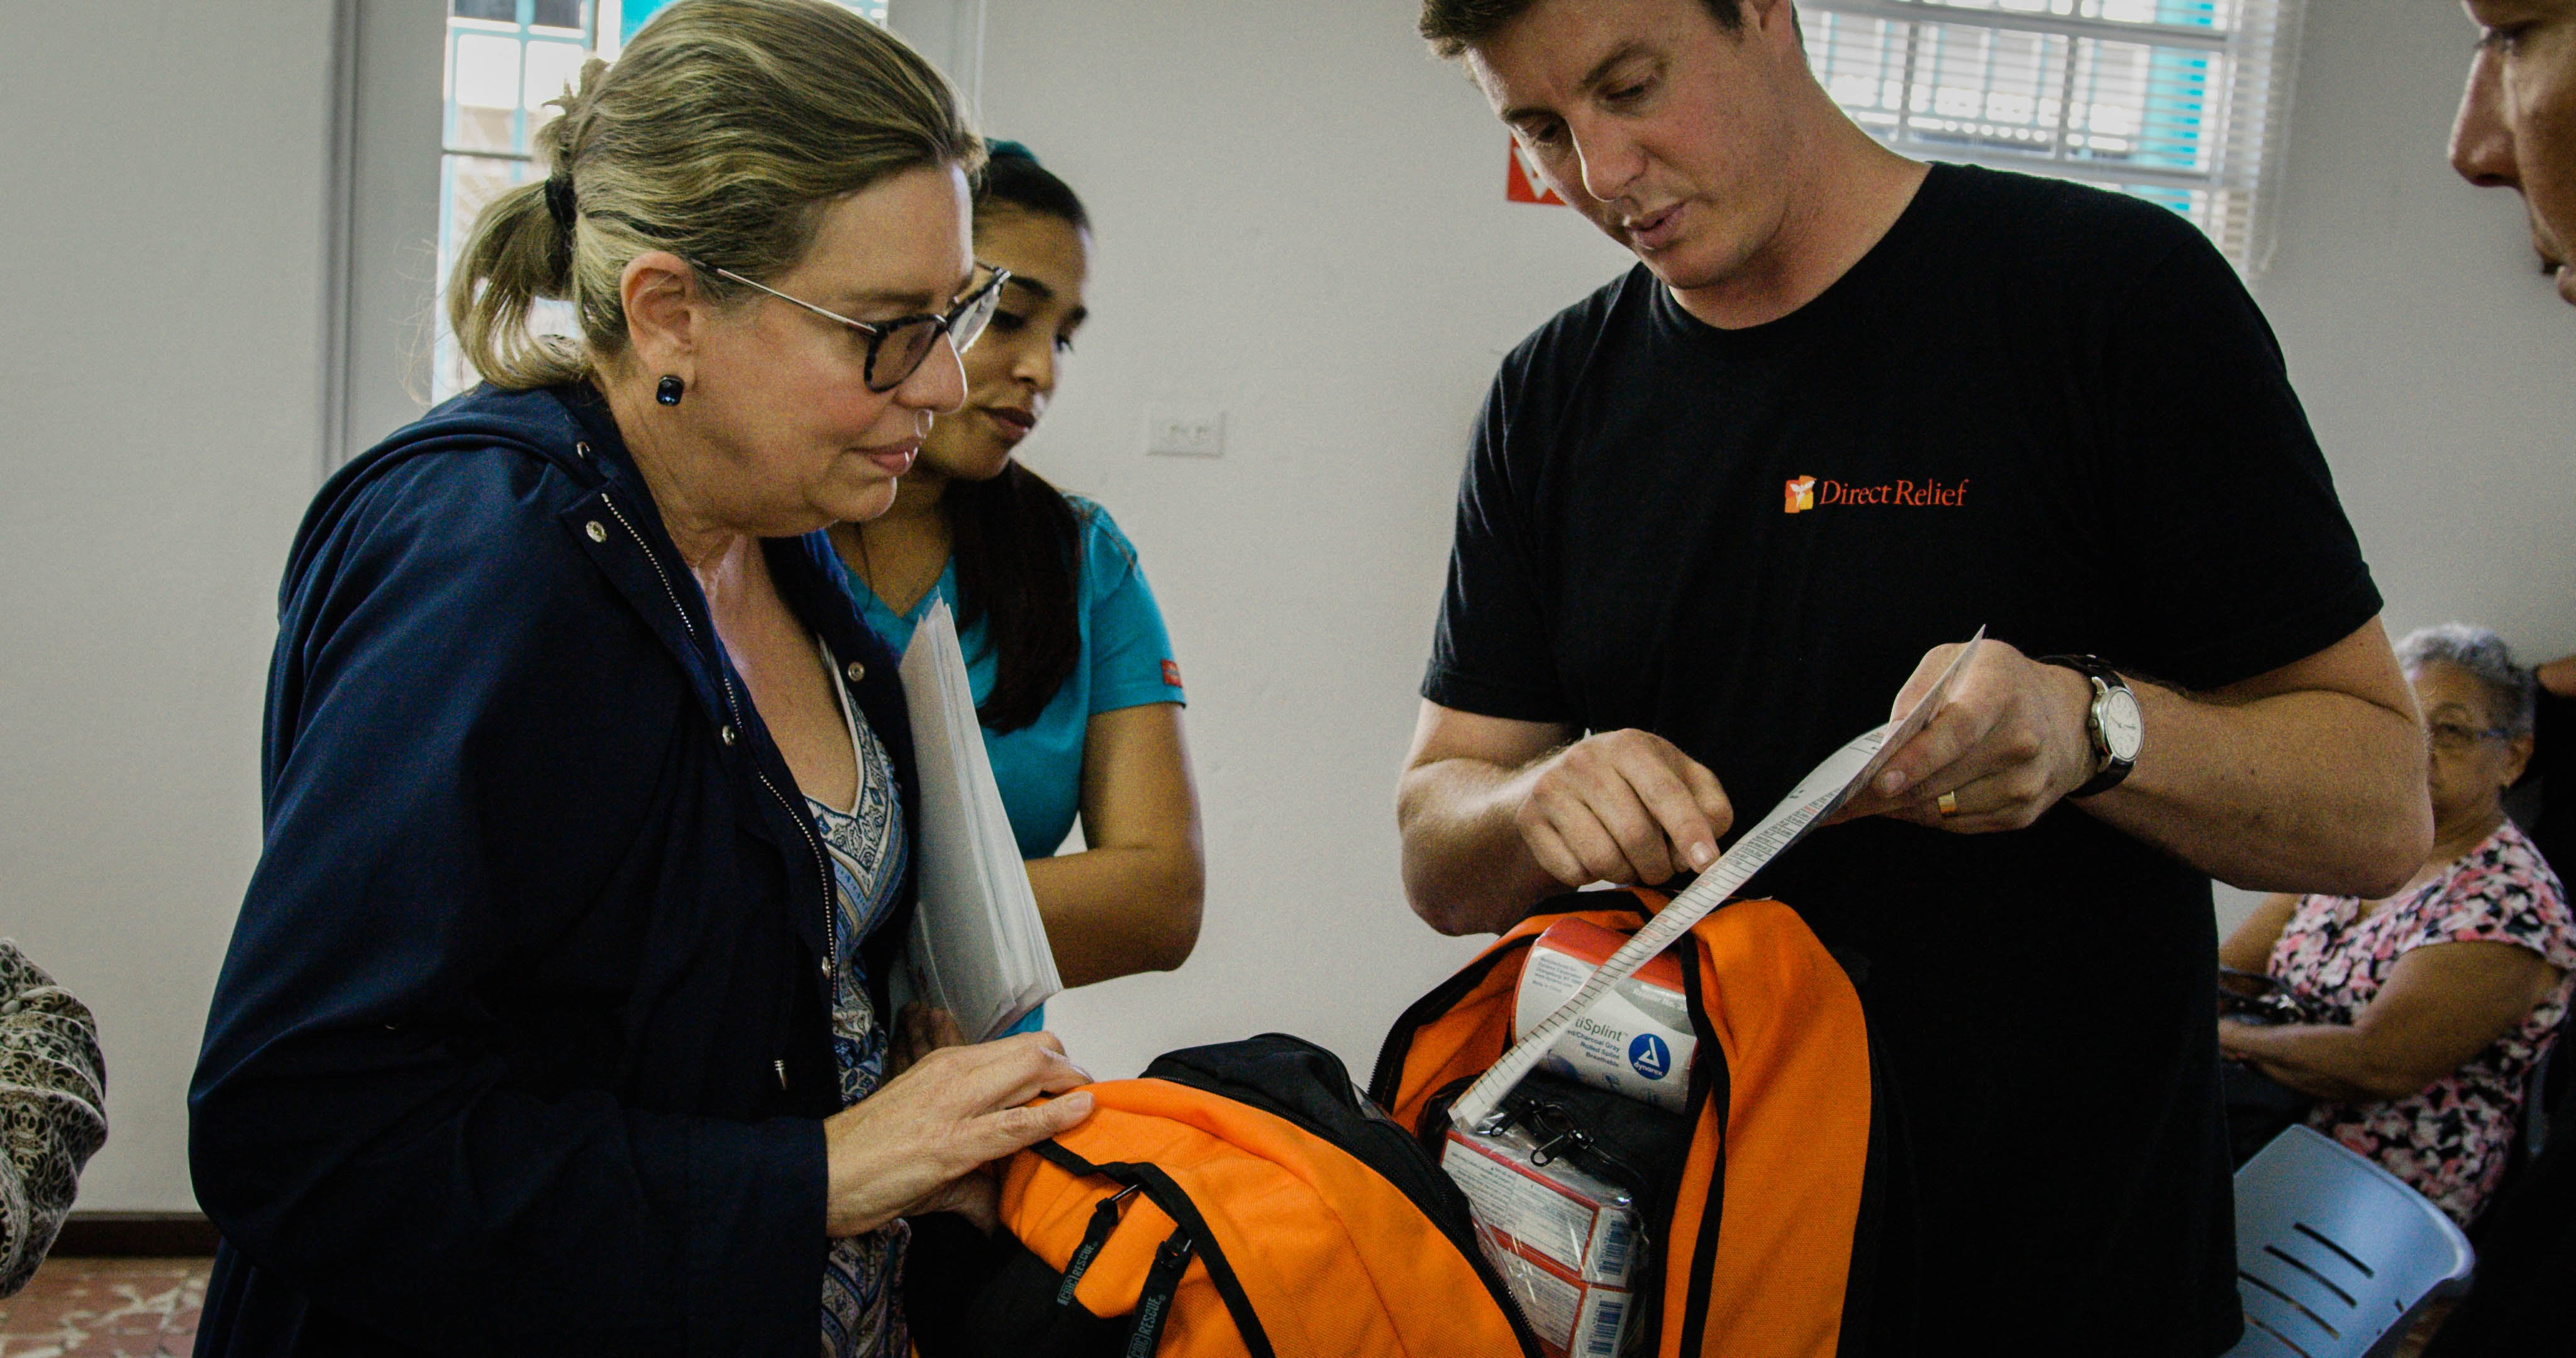 Emergency medical aid was delivered to Health ProMed in Vieques, an island 80 miles east of San Juan that was hit particularly hard by Hurricane Maria. (Photo by Bimarian Films for Direct Relief)